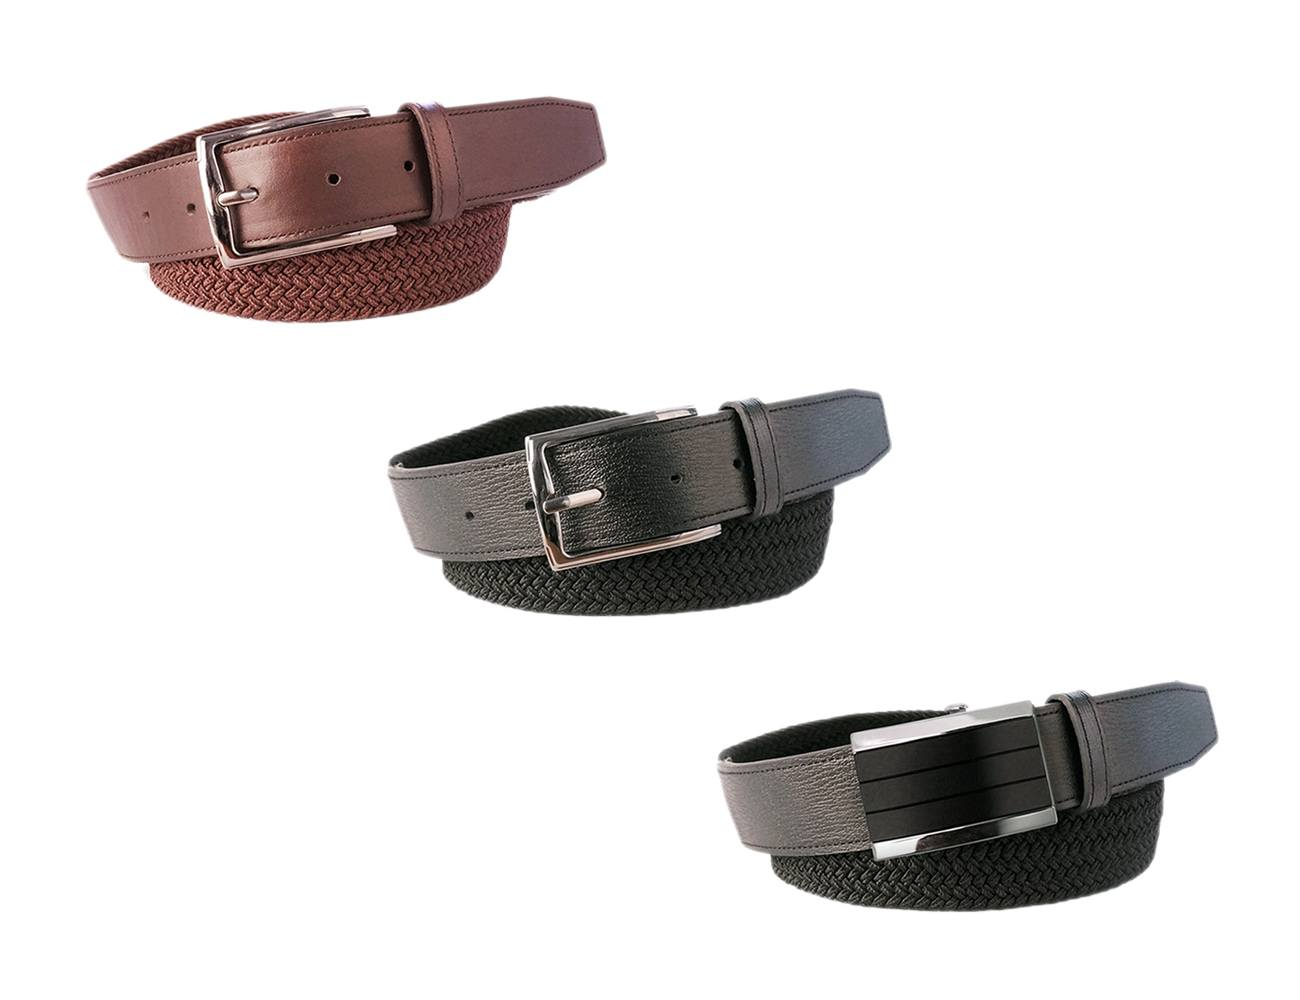 FitsAll Belt – Most Comfortable Dress Belt Ever